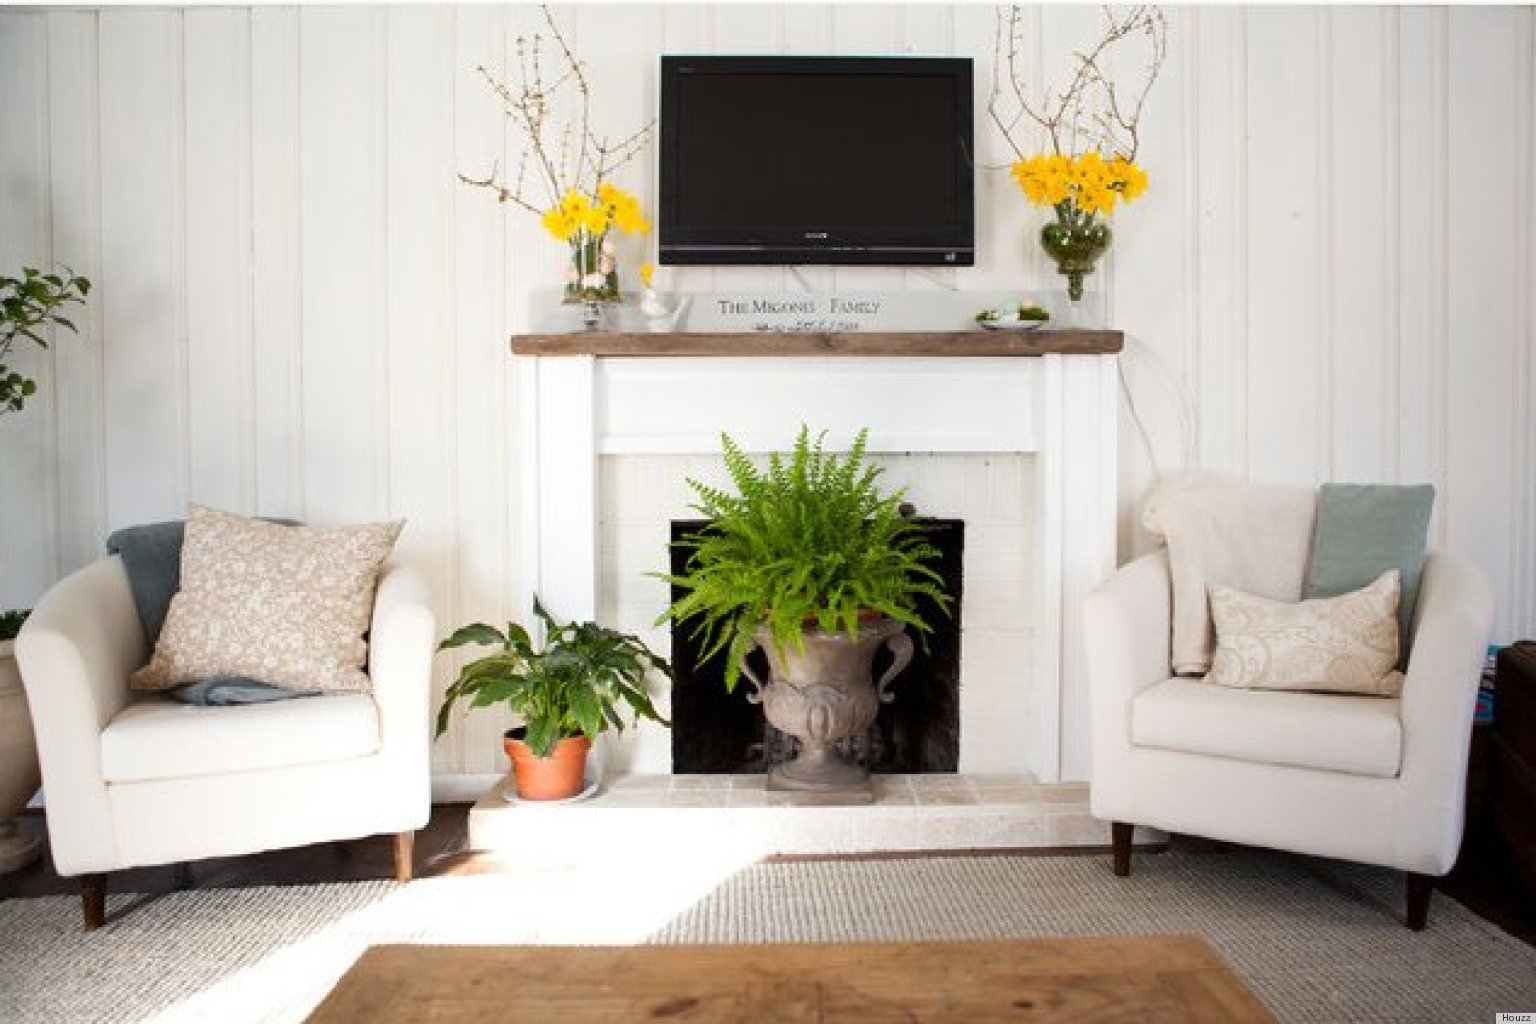 10 ways to decorate your fireplace in the summer since for Decor over fireplace